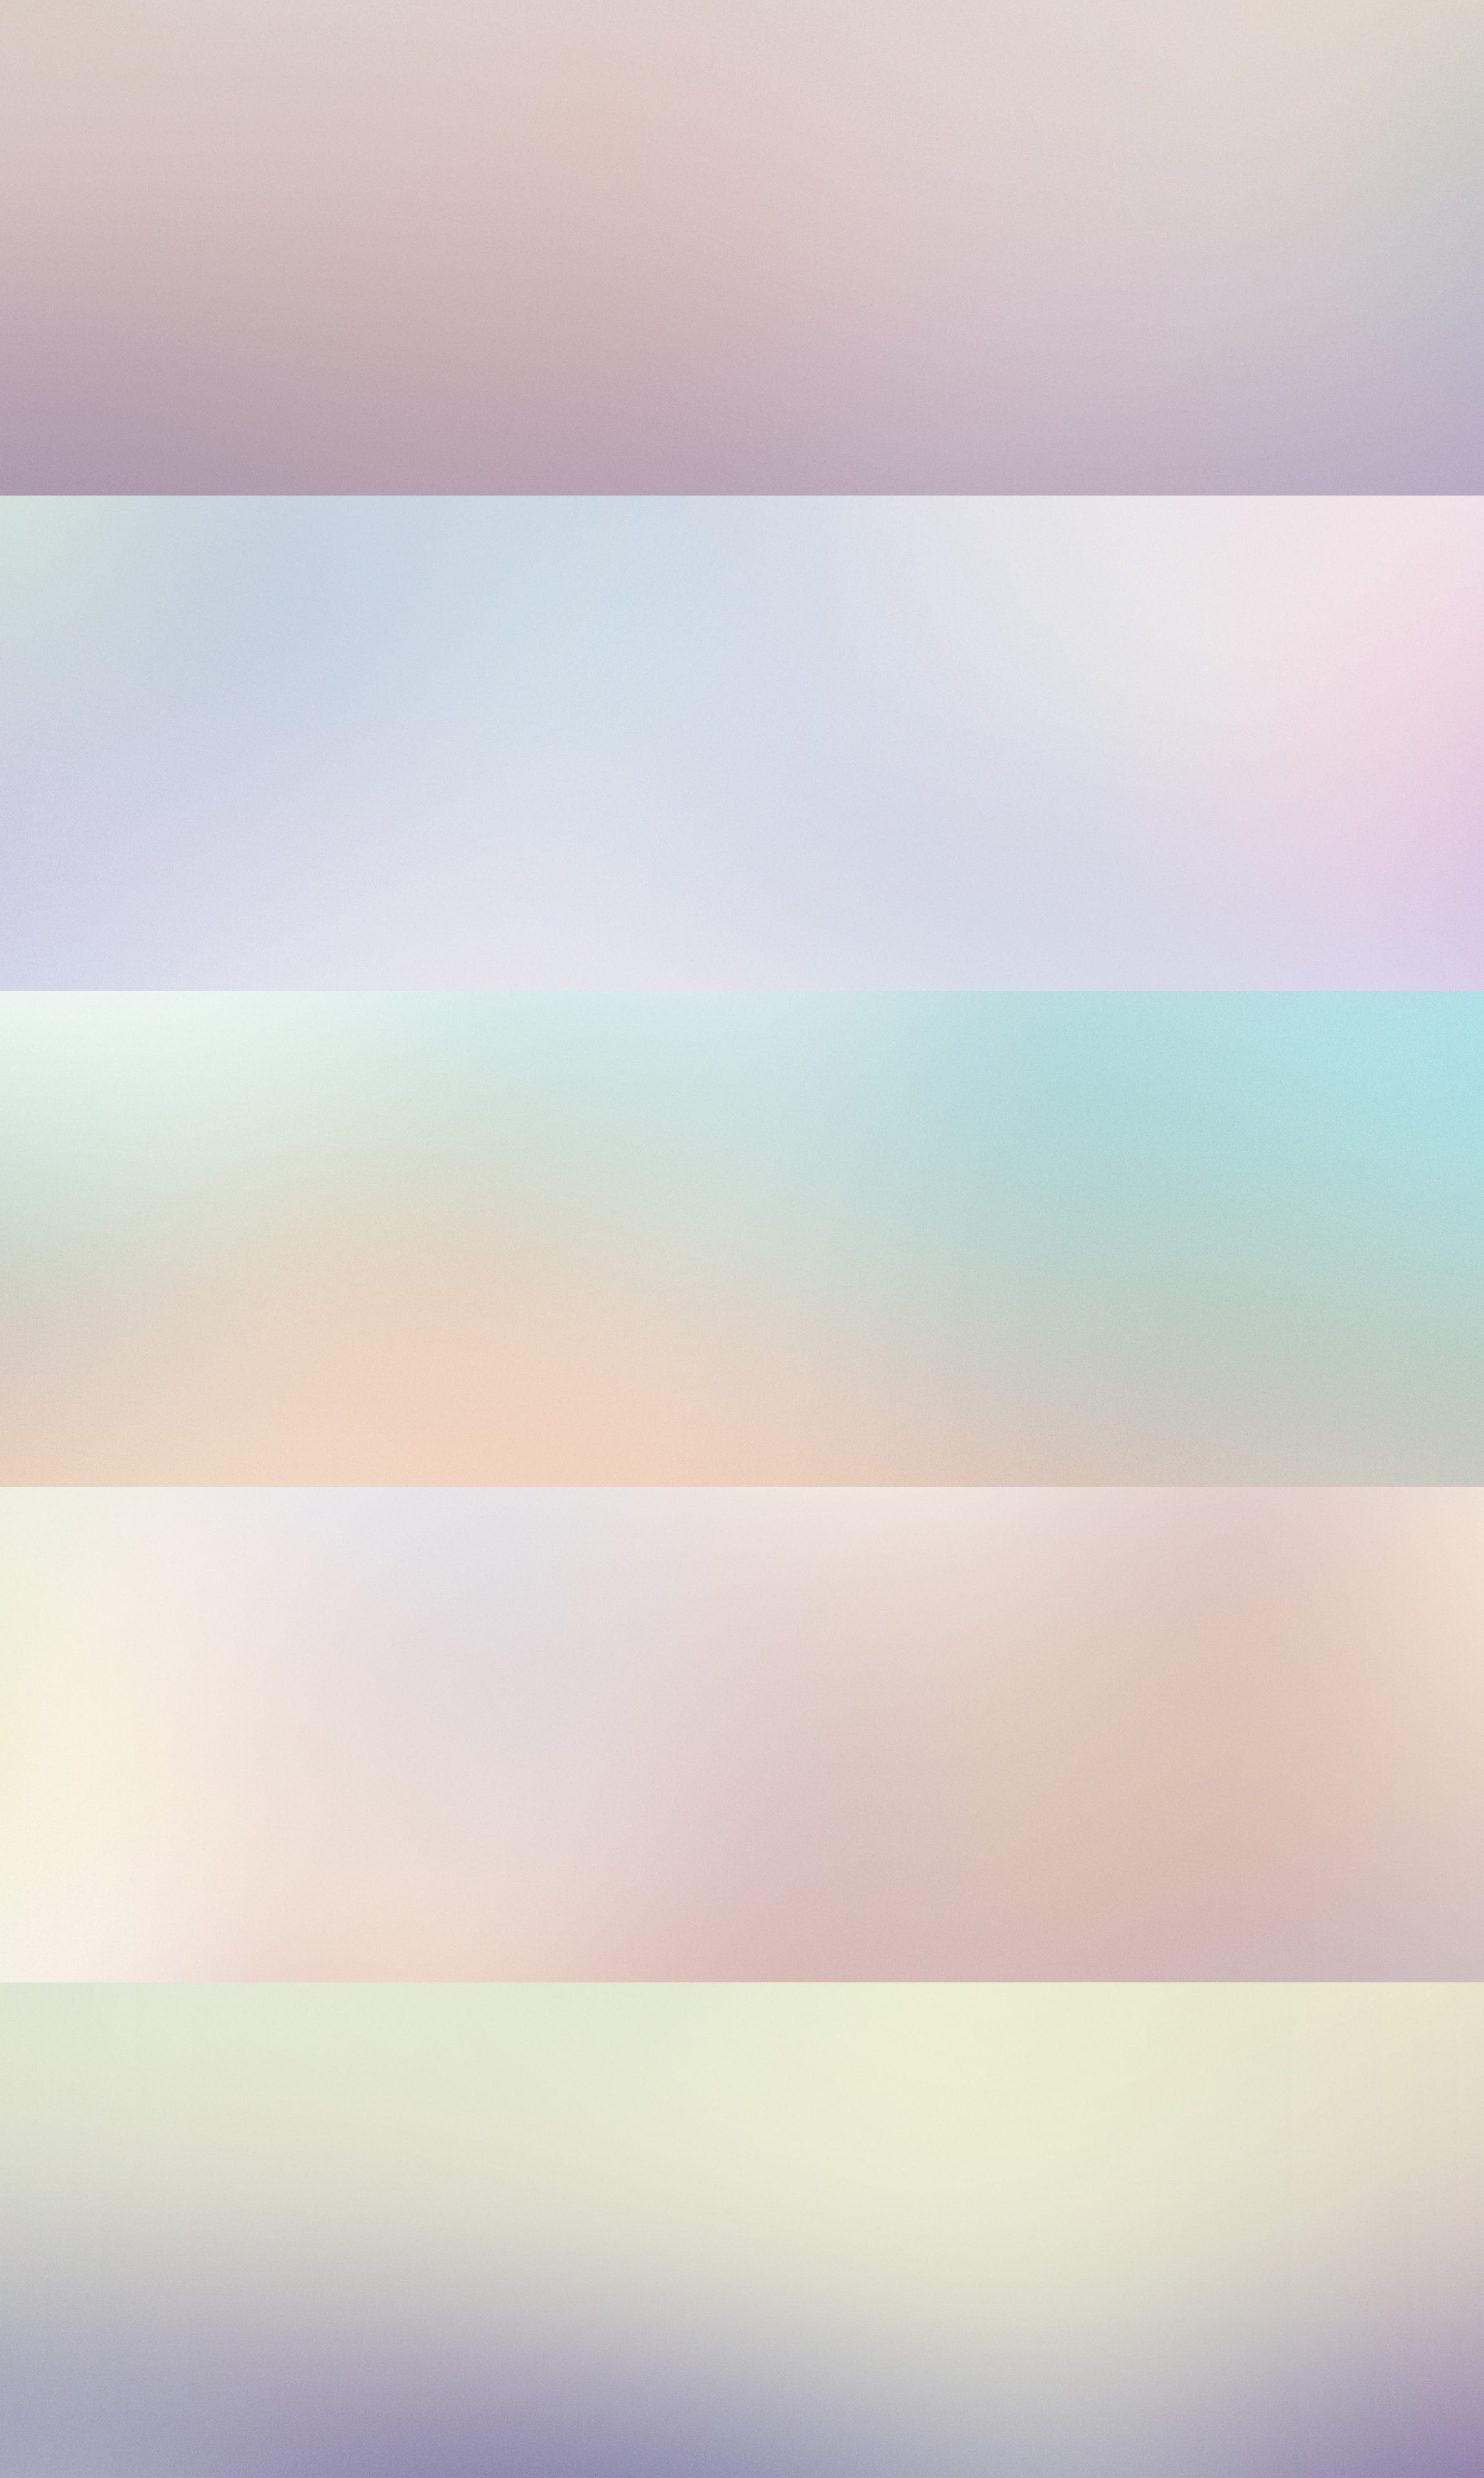 5 Blurred Backgrounds Vol2  GraphicBurger